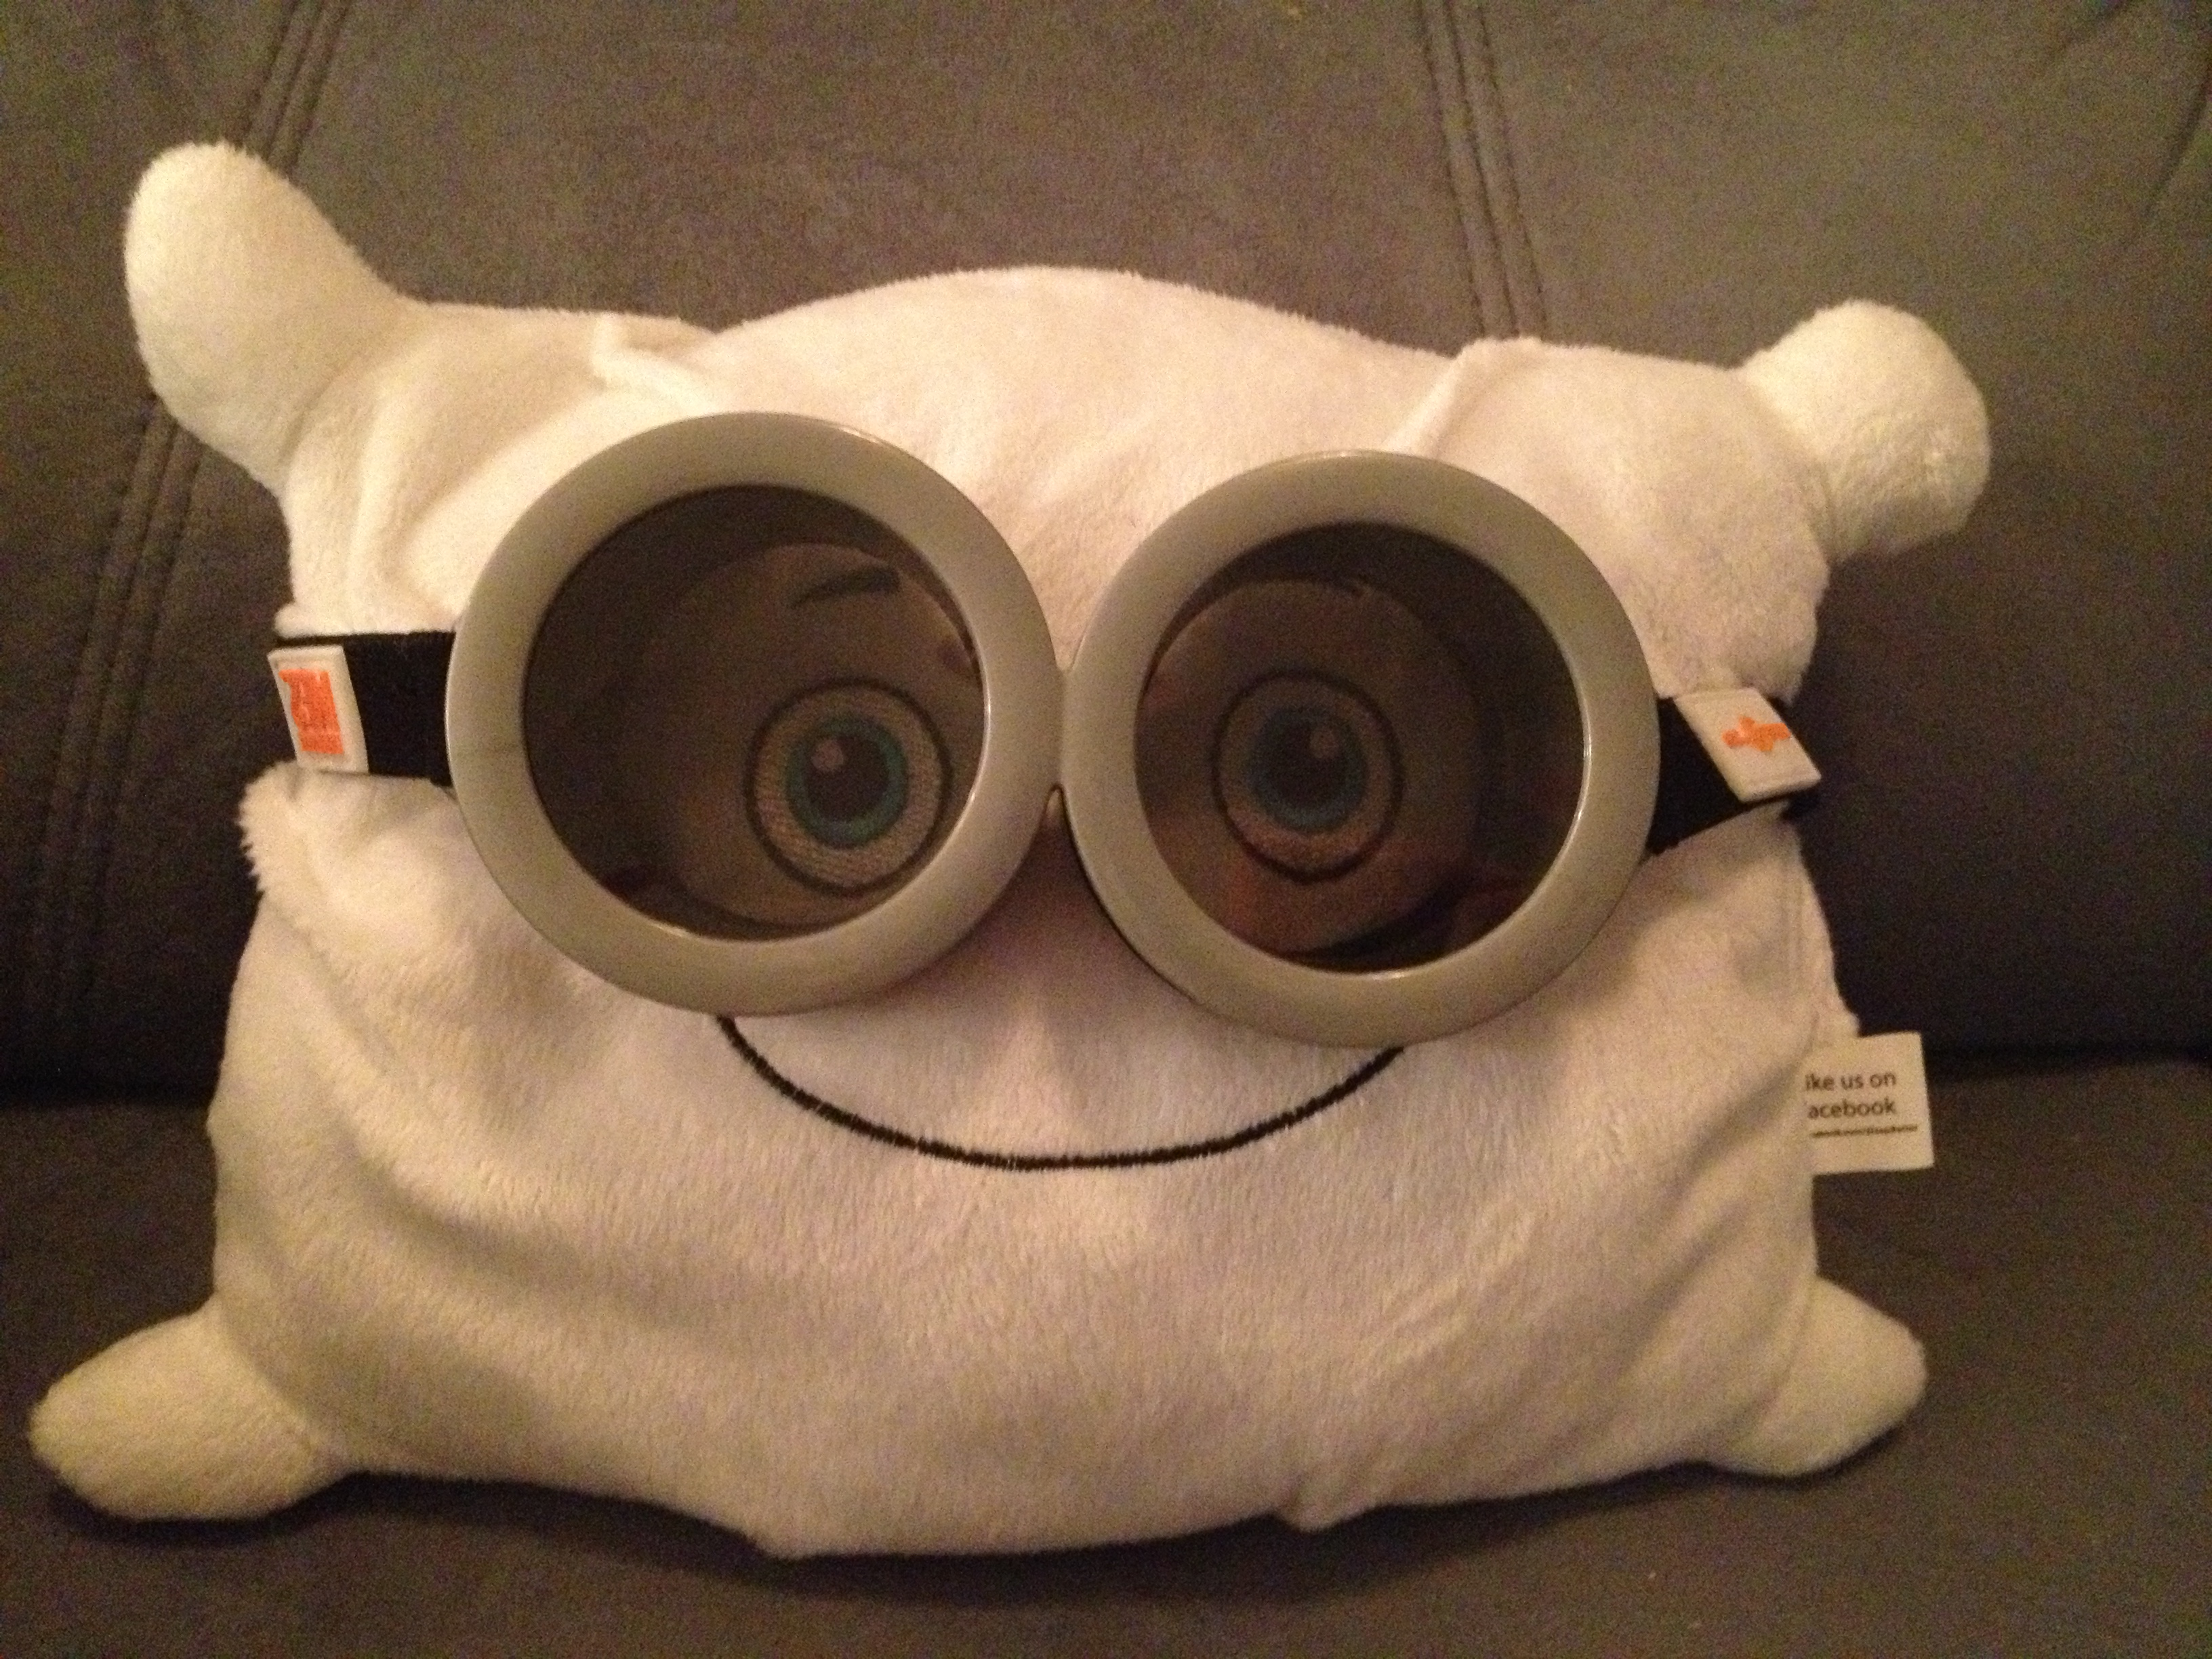 Found some flight goggles! All systems go for launch!